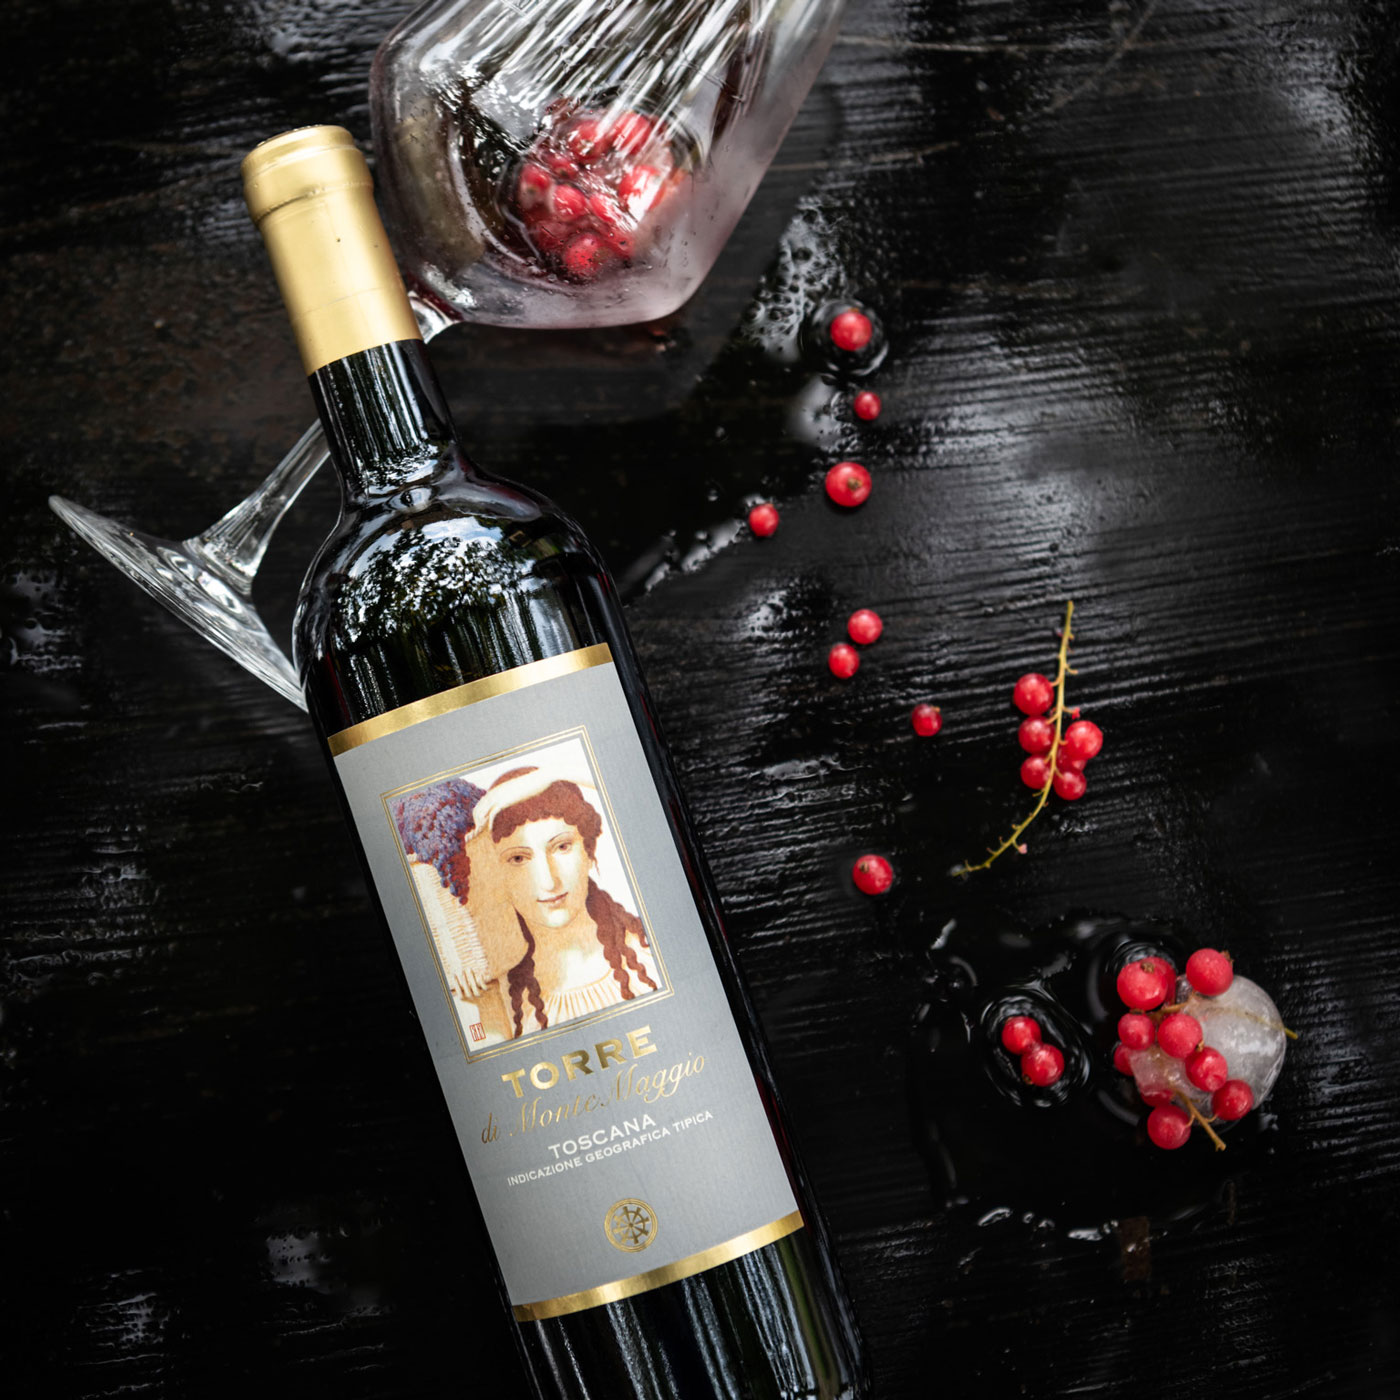 Torre di Montemaggio is a red Tuscan wine which was one of the first wines at Montemaggio